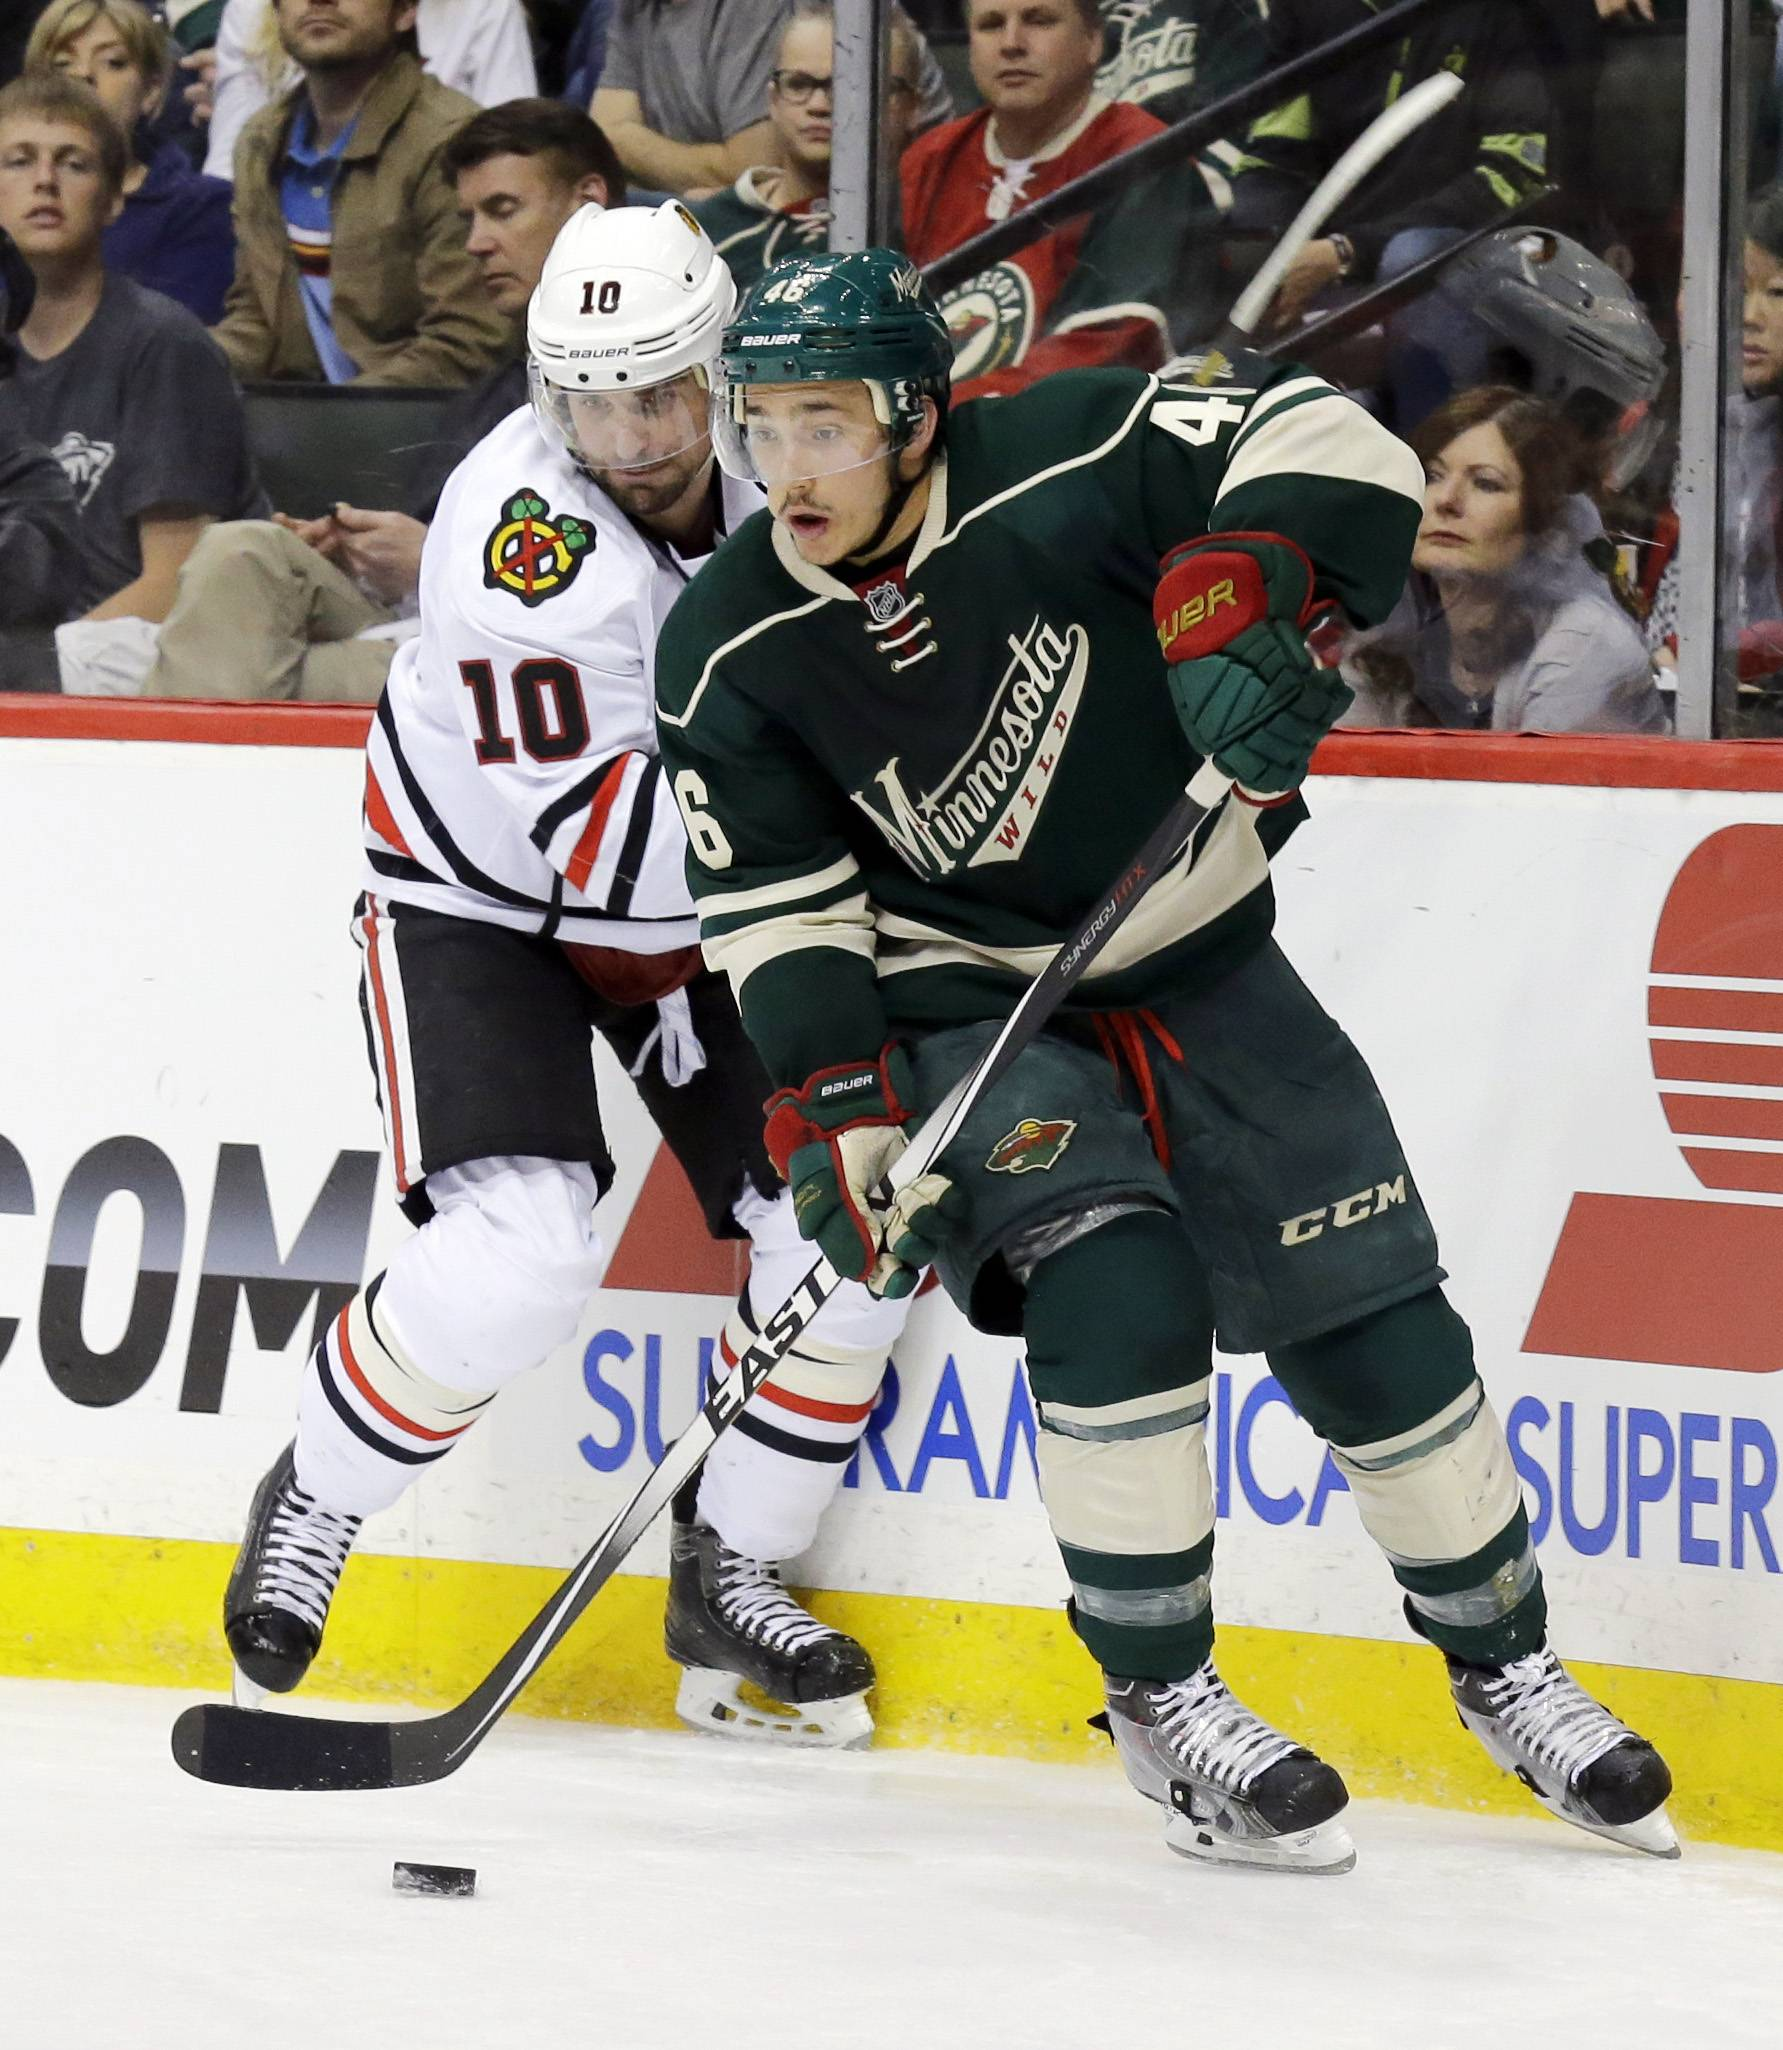 Minnesota Wild defenseman Jared Spurgeon (46) and Chicago Blackhawks left wing Patrick Sharp (10) chase the puck during the second period of Game 3 of an NHL hockey second-round playoff series in St. Paul, Minn., Tuesday, May 6, 2014. (AP Photo/Ann Heisenfelt)